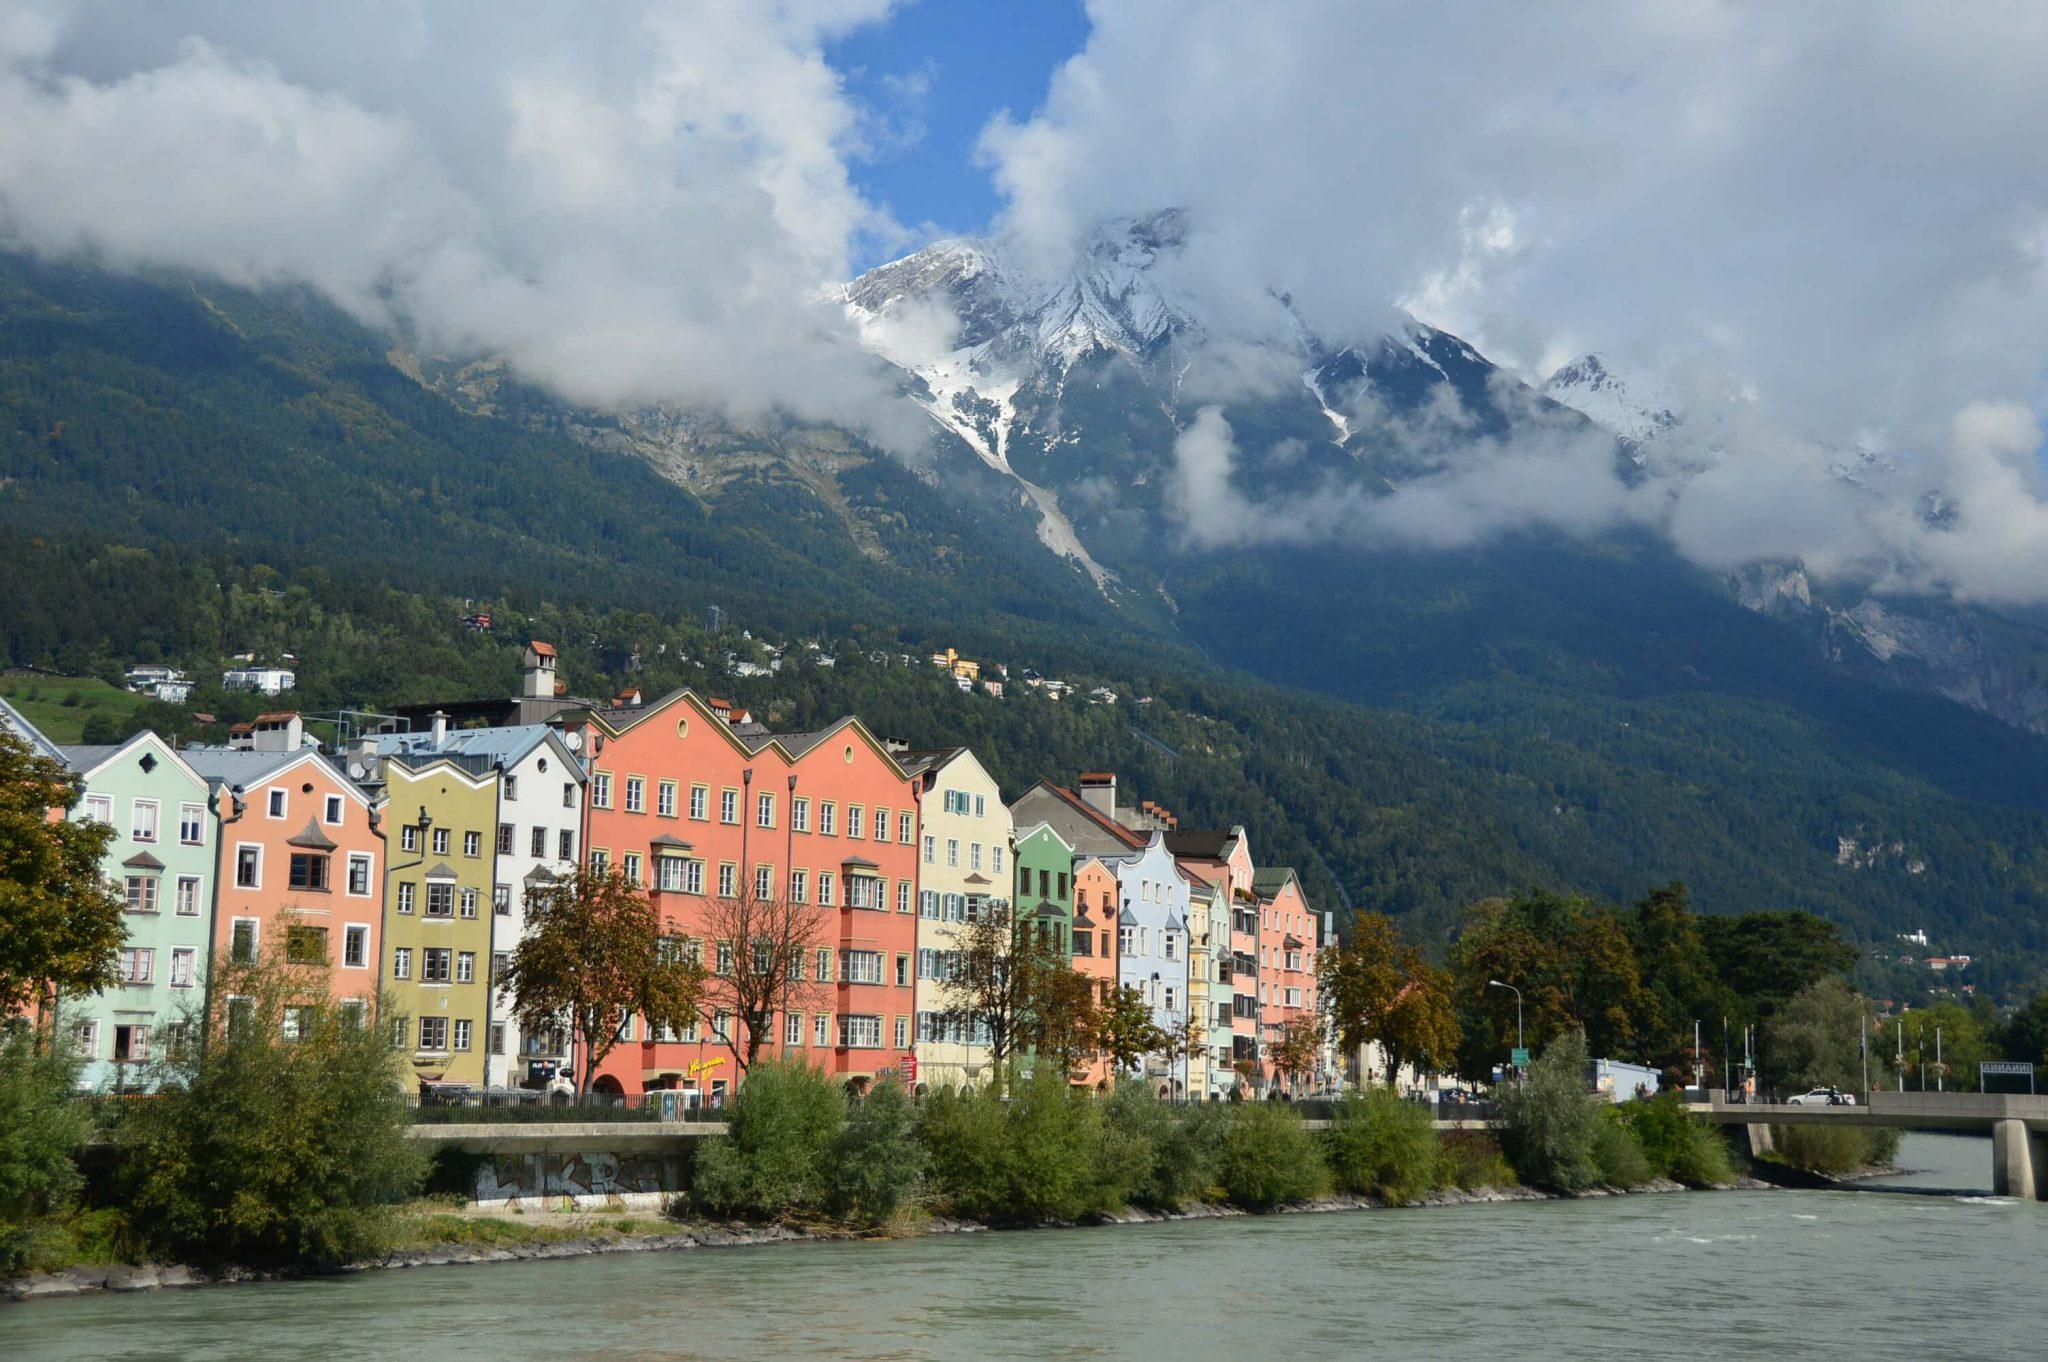 Innsbruck Highlights: What to do on an Innsbruck Layover